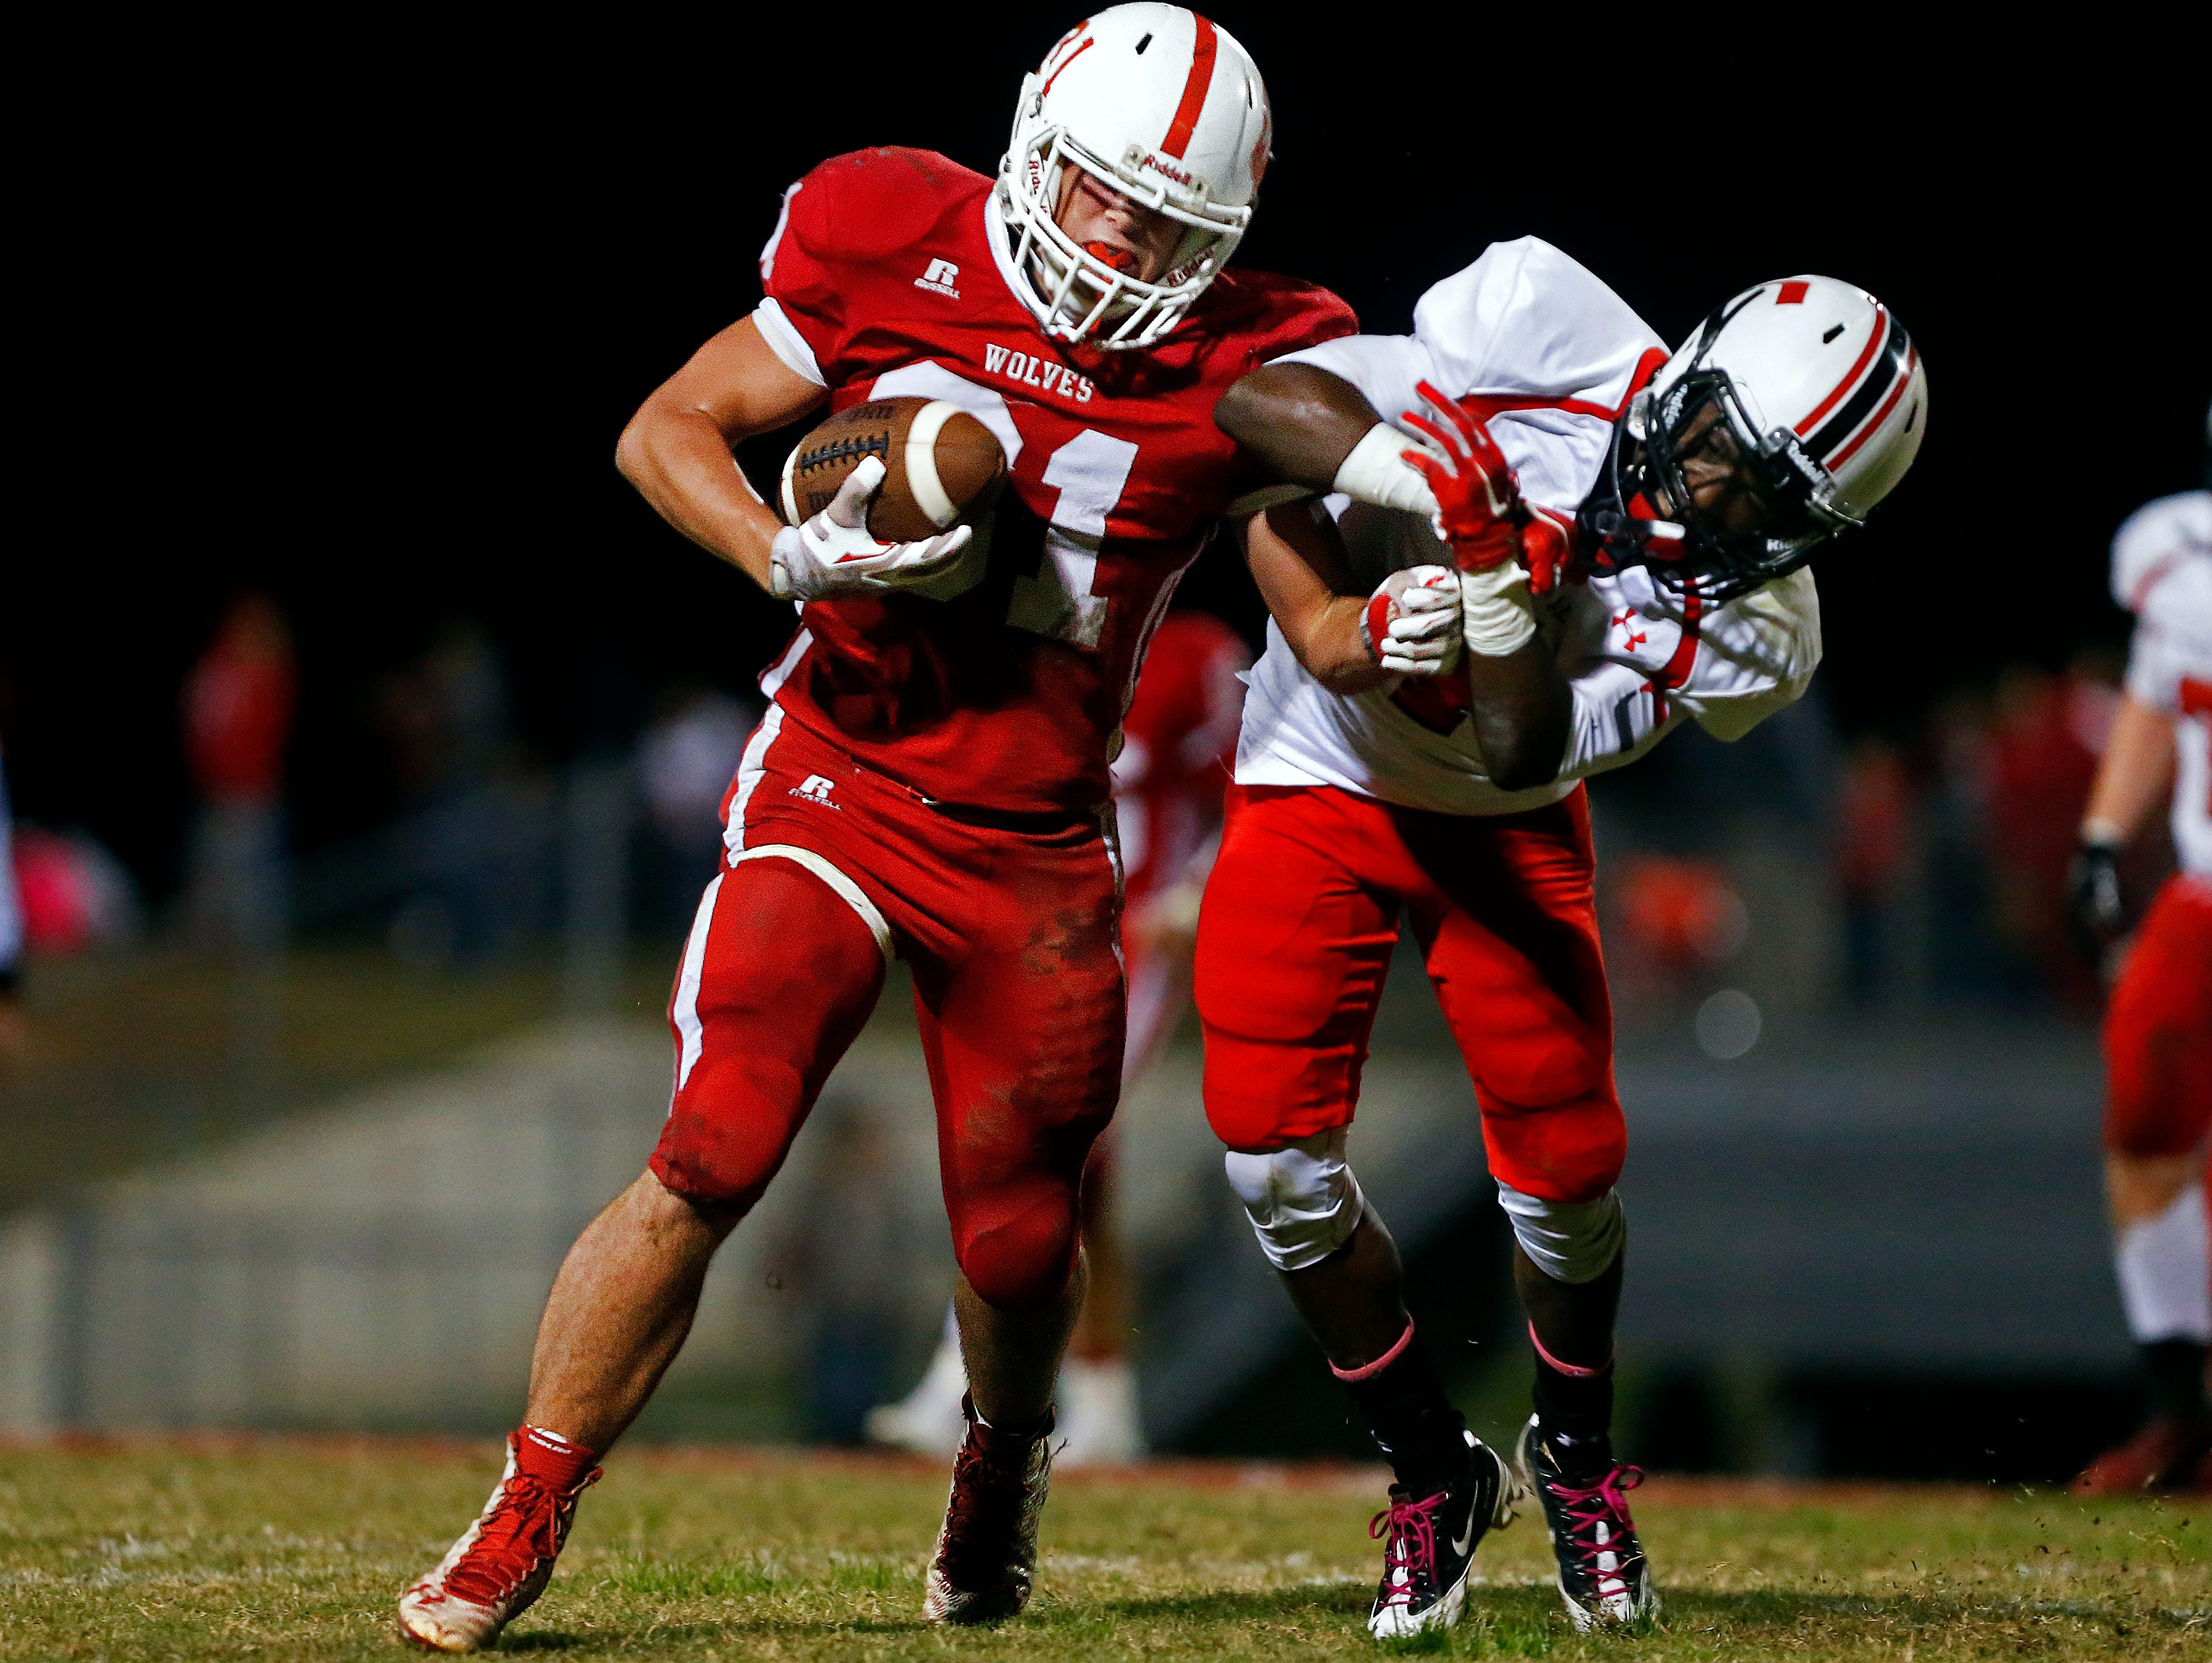 Reeds Spring High School fullback Colton Pomeroy (31) bounces off of a hard hit by Bulldogs defensive back Damarcus Mason (4) during second quarter action of the Wolves' game against Central High School at Carl Langley Field in Reeds Spring, Mo. on Oct. 9, 2015. Reeds Spring won the game 35-24.